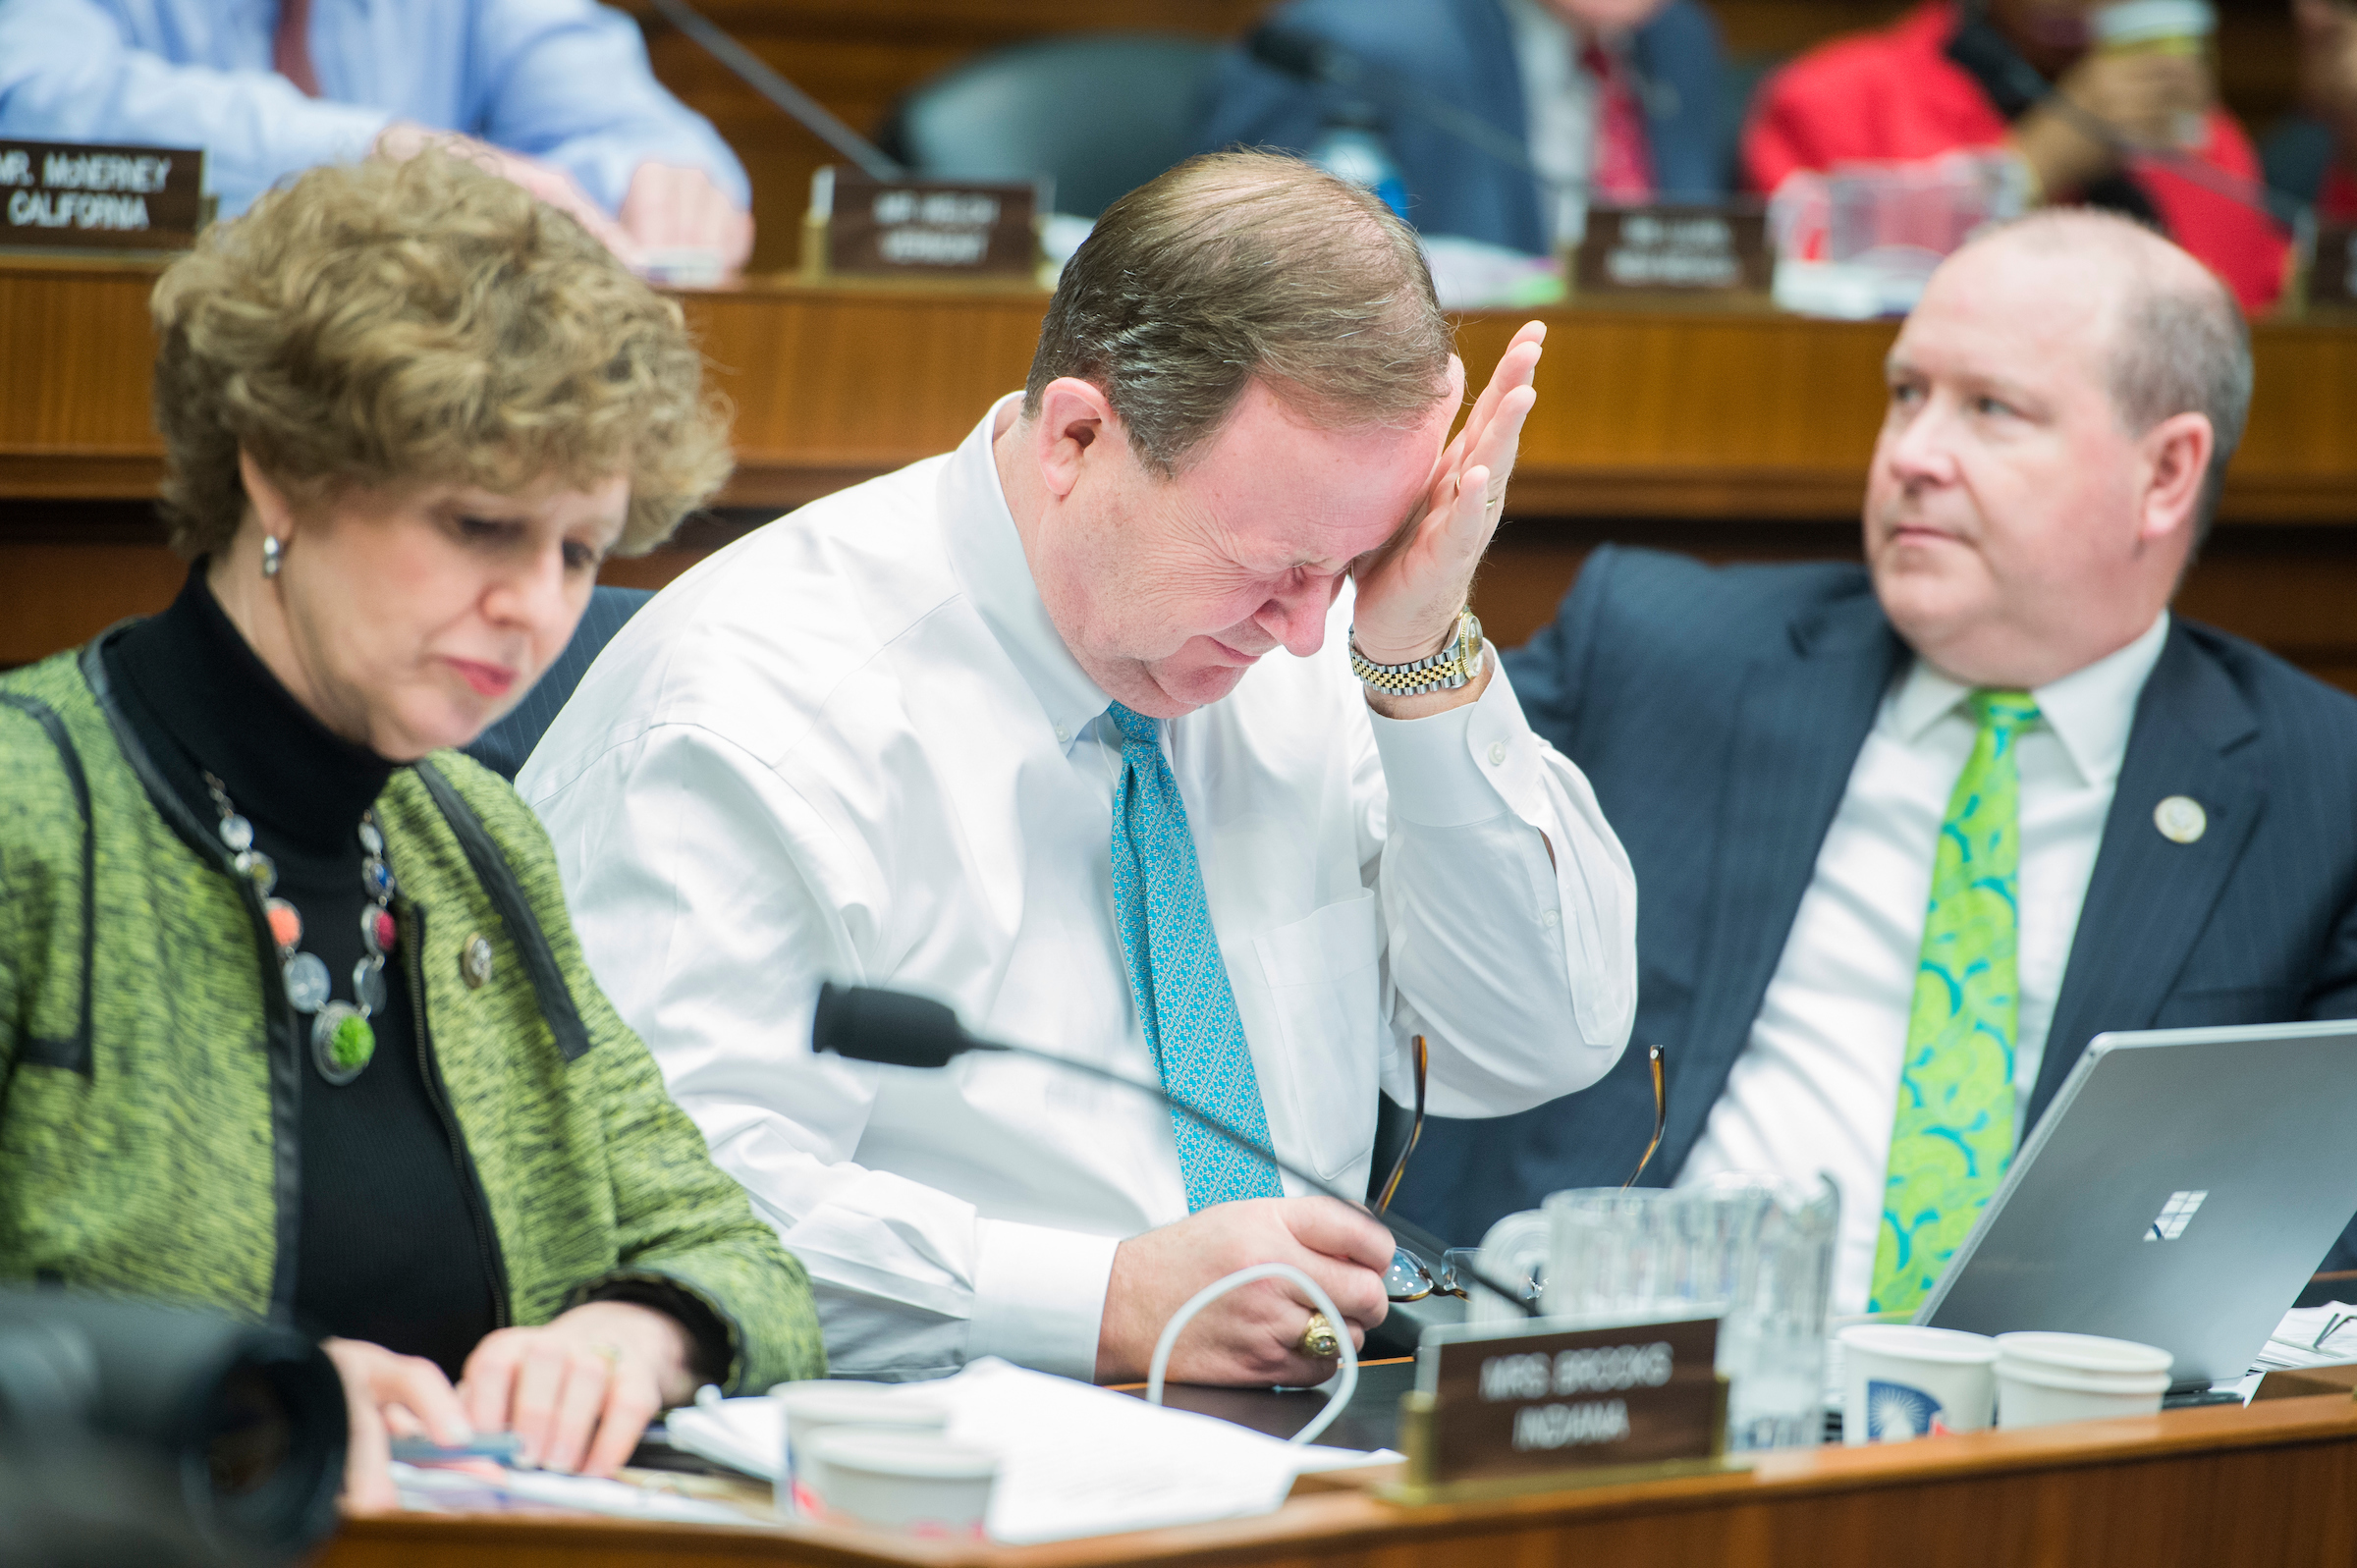 From left, Reps. Susan Brooks, R-Ind., Bill Flores, R-Texas, and Larry Bucshon, R-Ind., are still going after the 24-hour mark of a House Energy and Commerce Committee markup in Rayburn Building regarding the bill to repeal and replace the the Affordable Care Act on Thursday. The markup has began at 10:30 a.m. on Wednesday. (Tom Williams/CQ Roll Call)